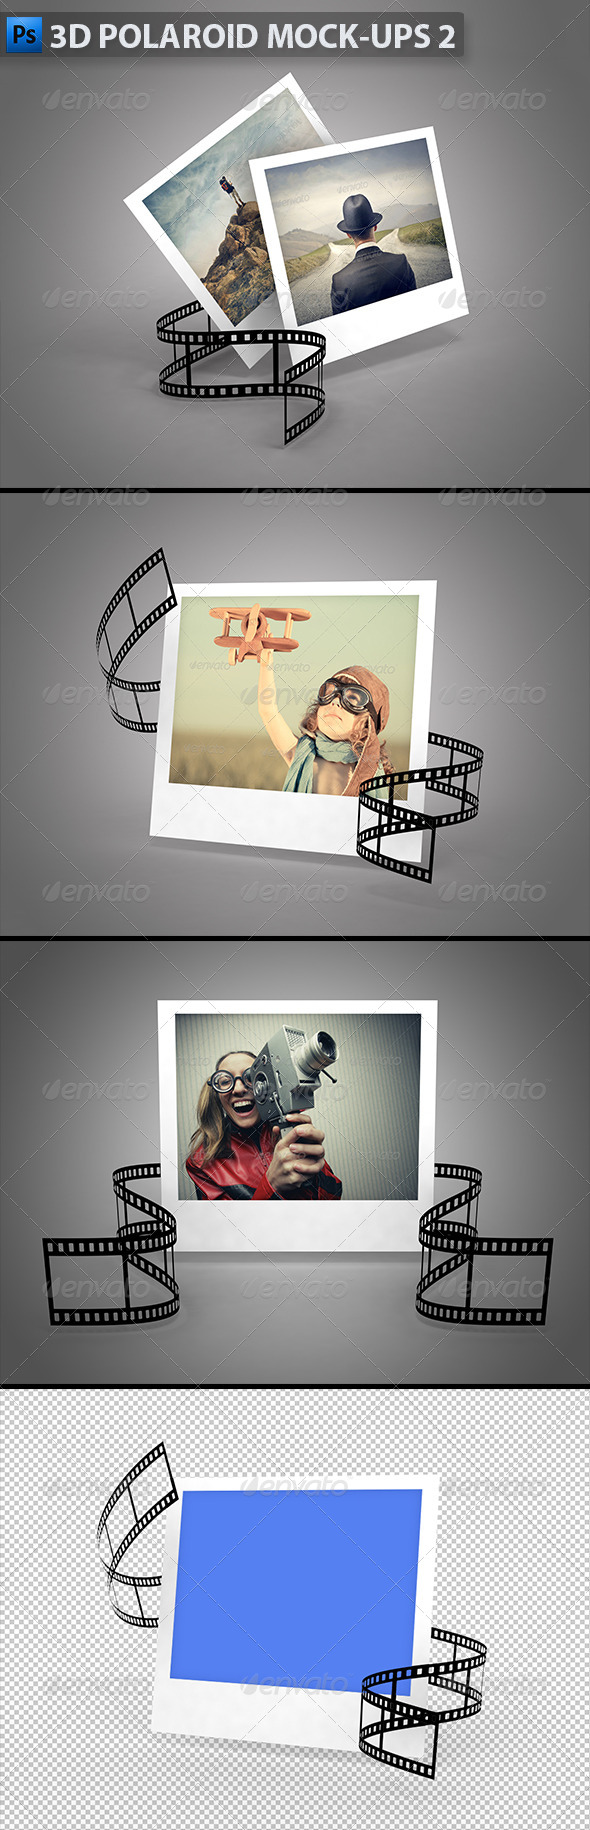 3D Polaroid Mock-Ups 2 - Miscellaneous Photo Templates